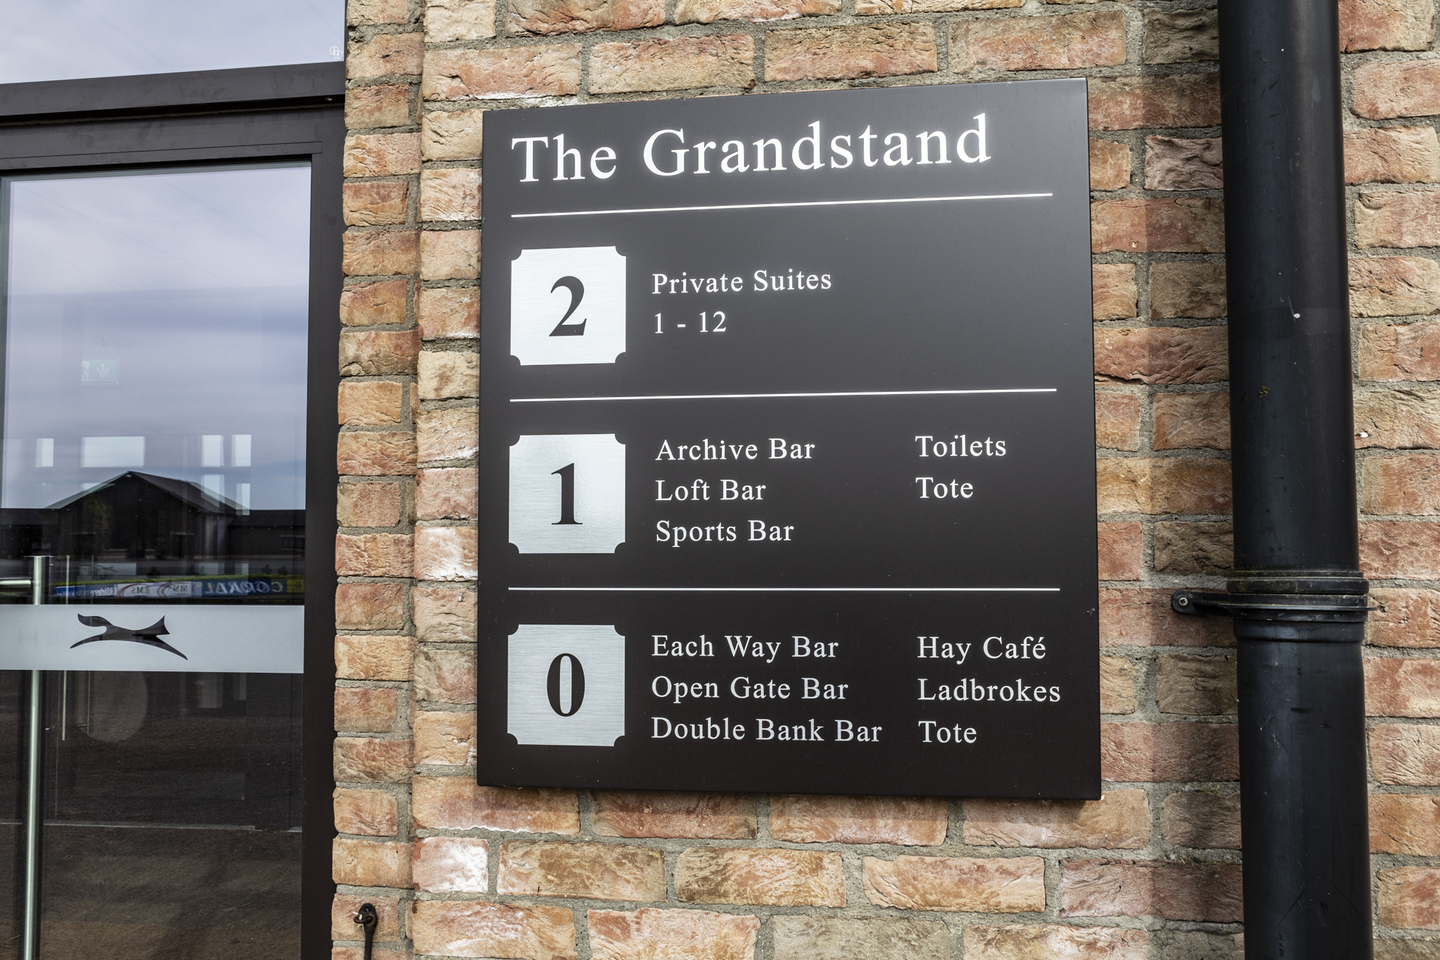 external wall-mounted - the grandstand